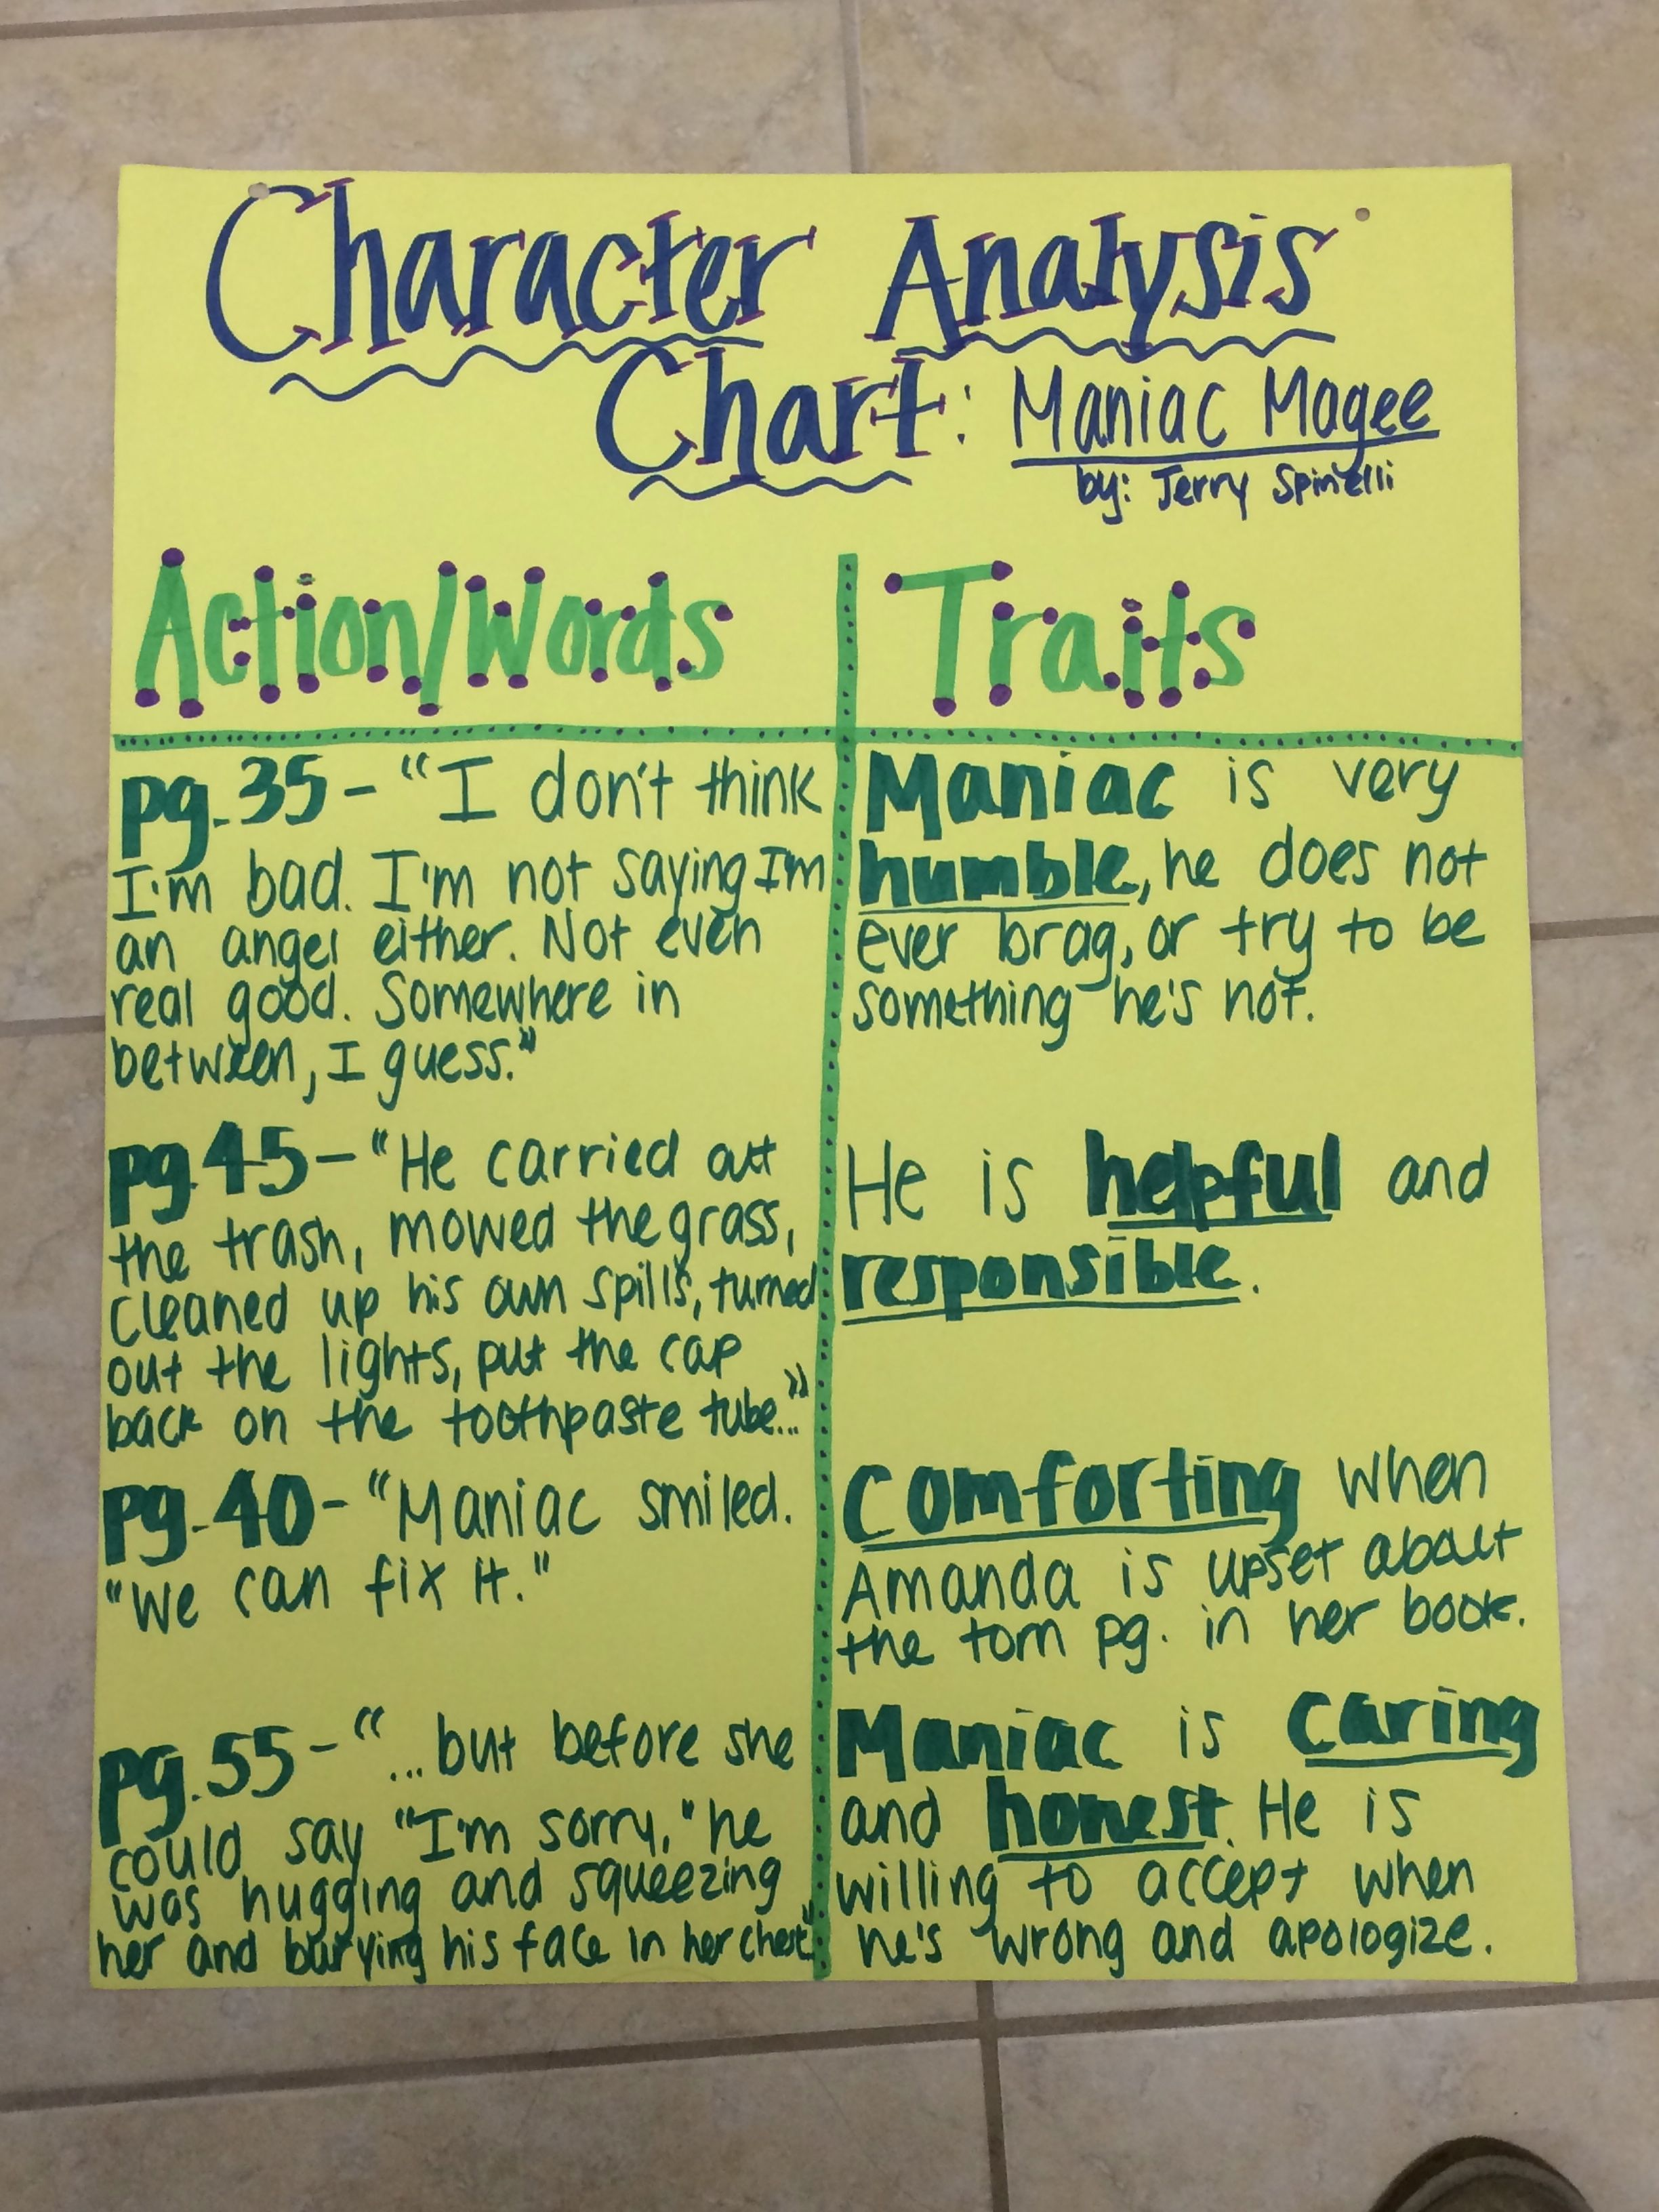 Characterysis Chart Using Maniac Magee As An Example